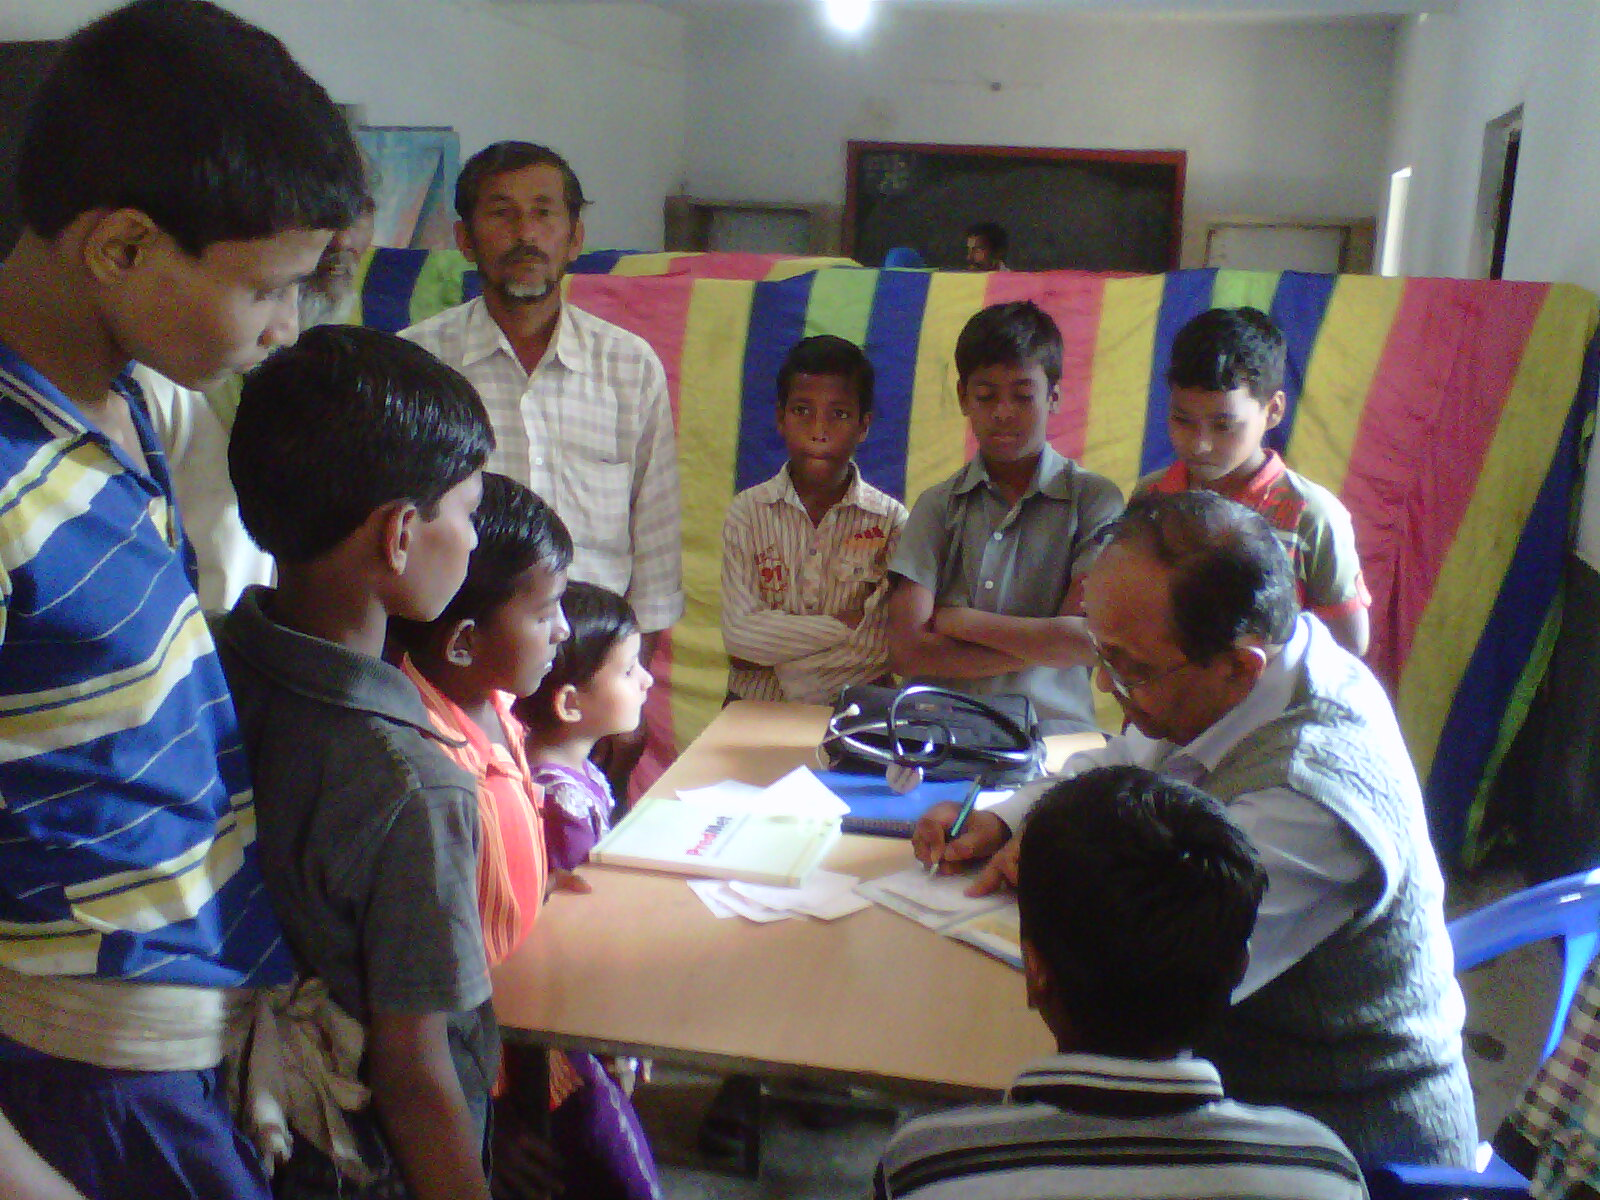 Dr. S N Kar, Paediatriciian surrounded by children